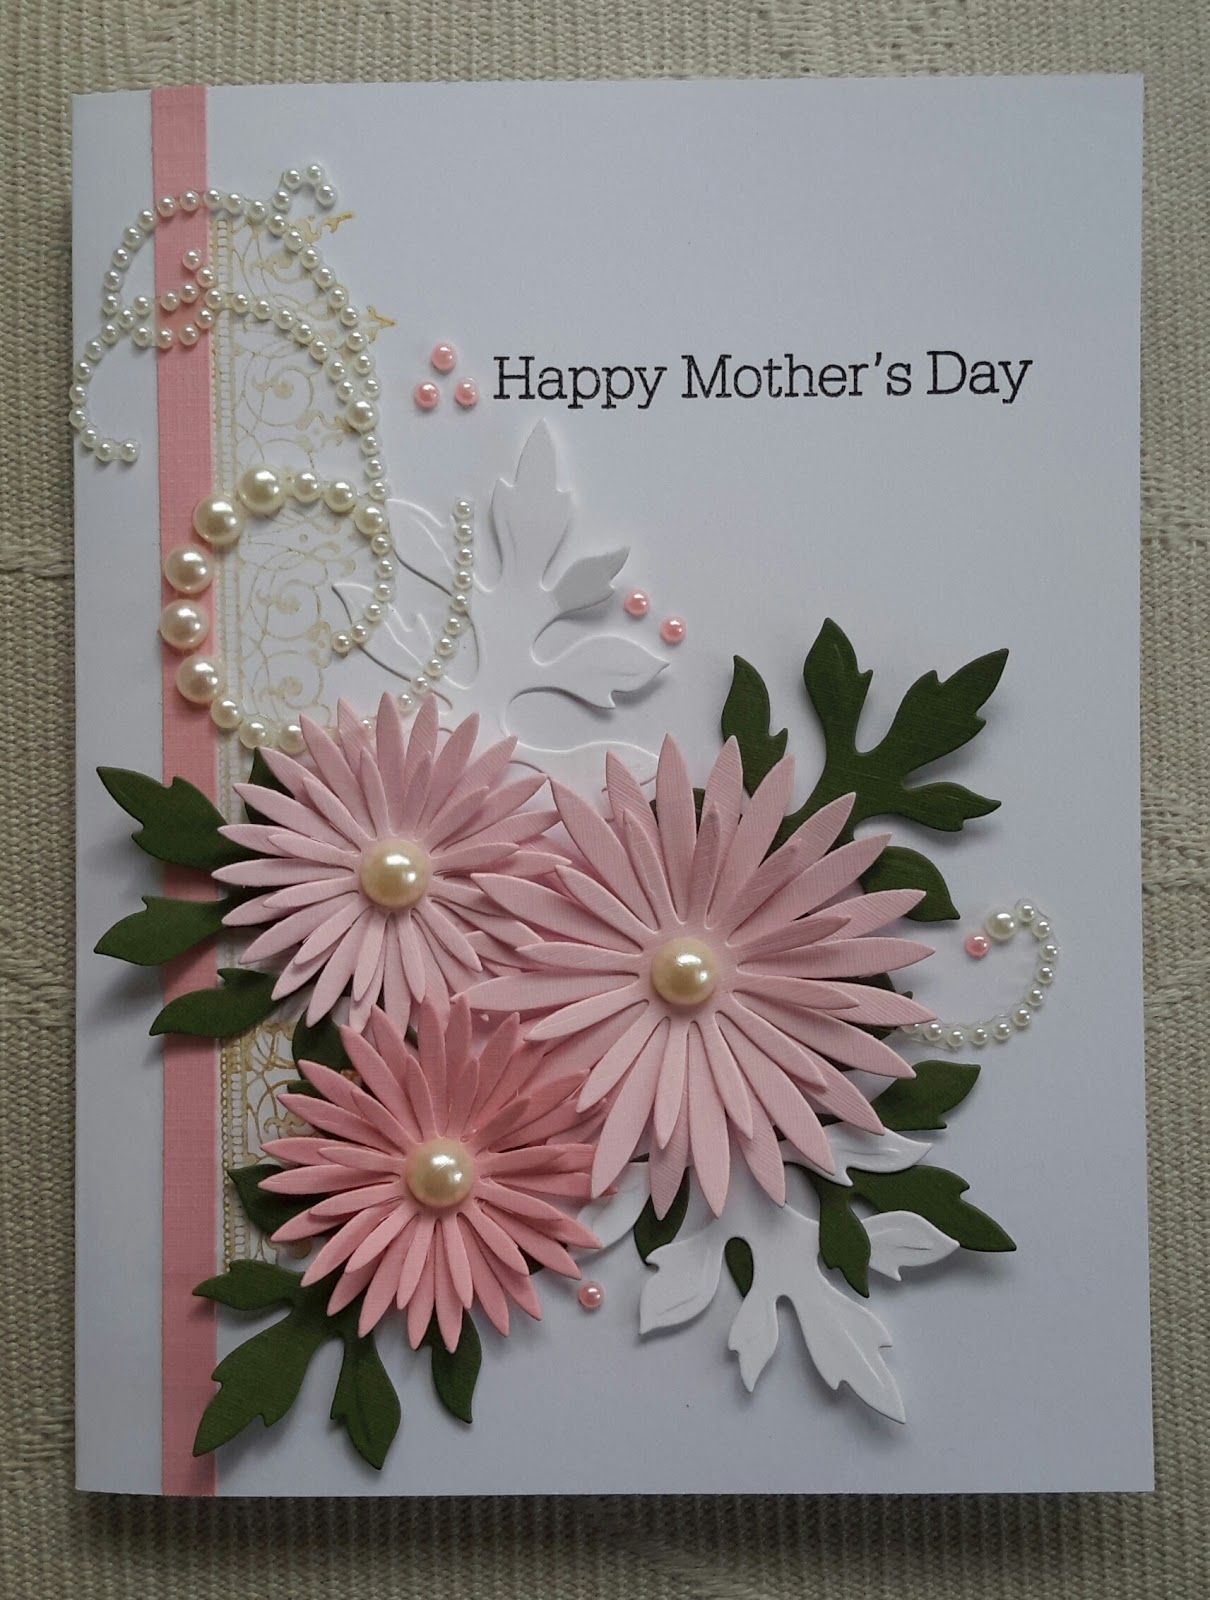 I Believe This To Be The Last Of The Mothers Day Cards That I Made